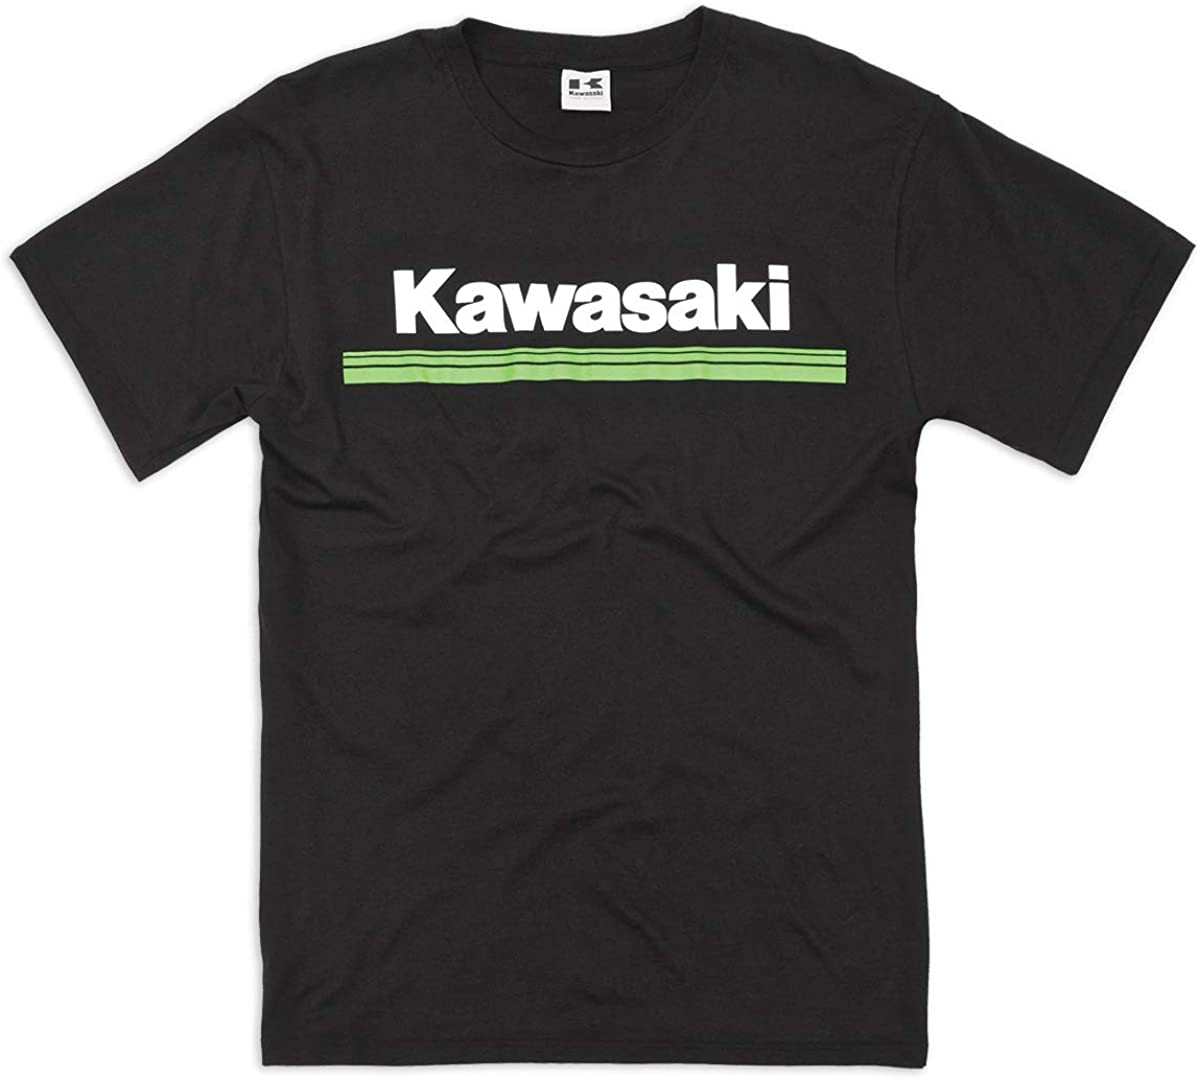 Kawasaki 3 Green Lines Short Sleeve T-Shirt Black